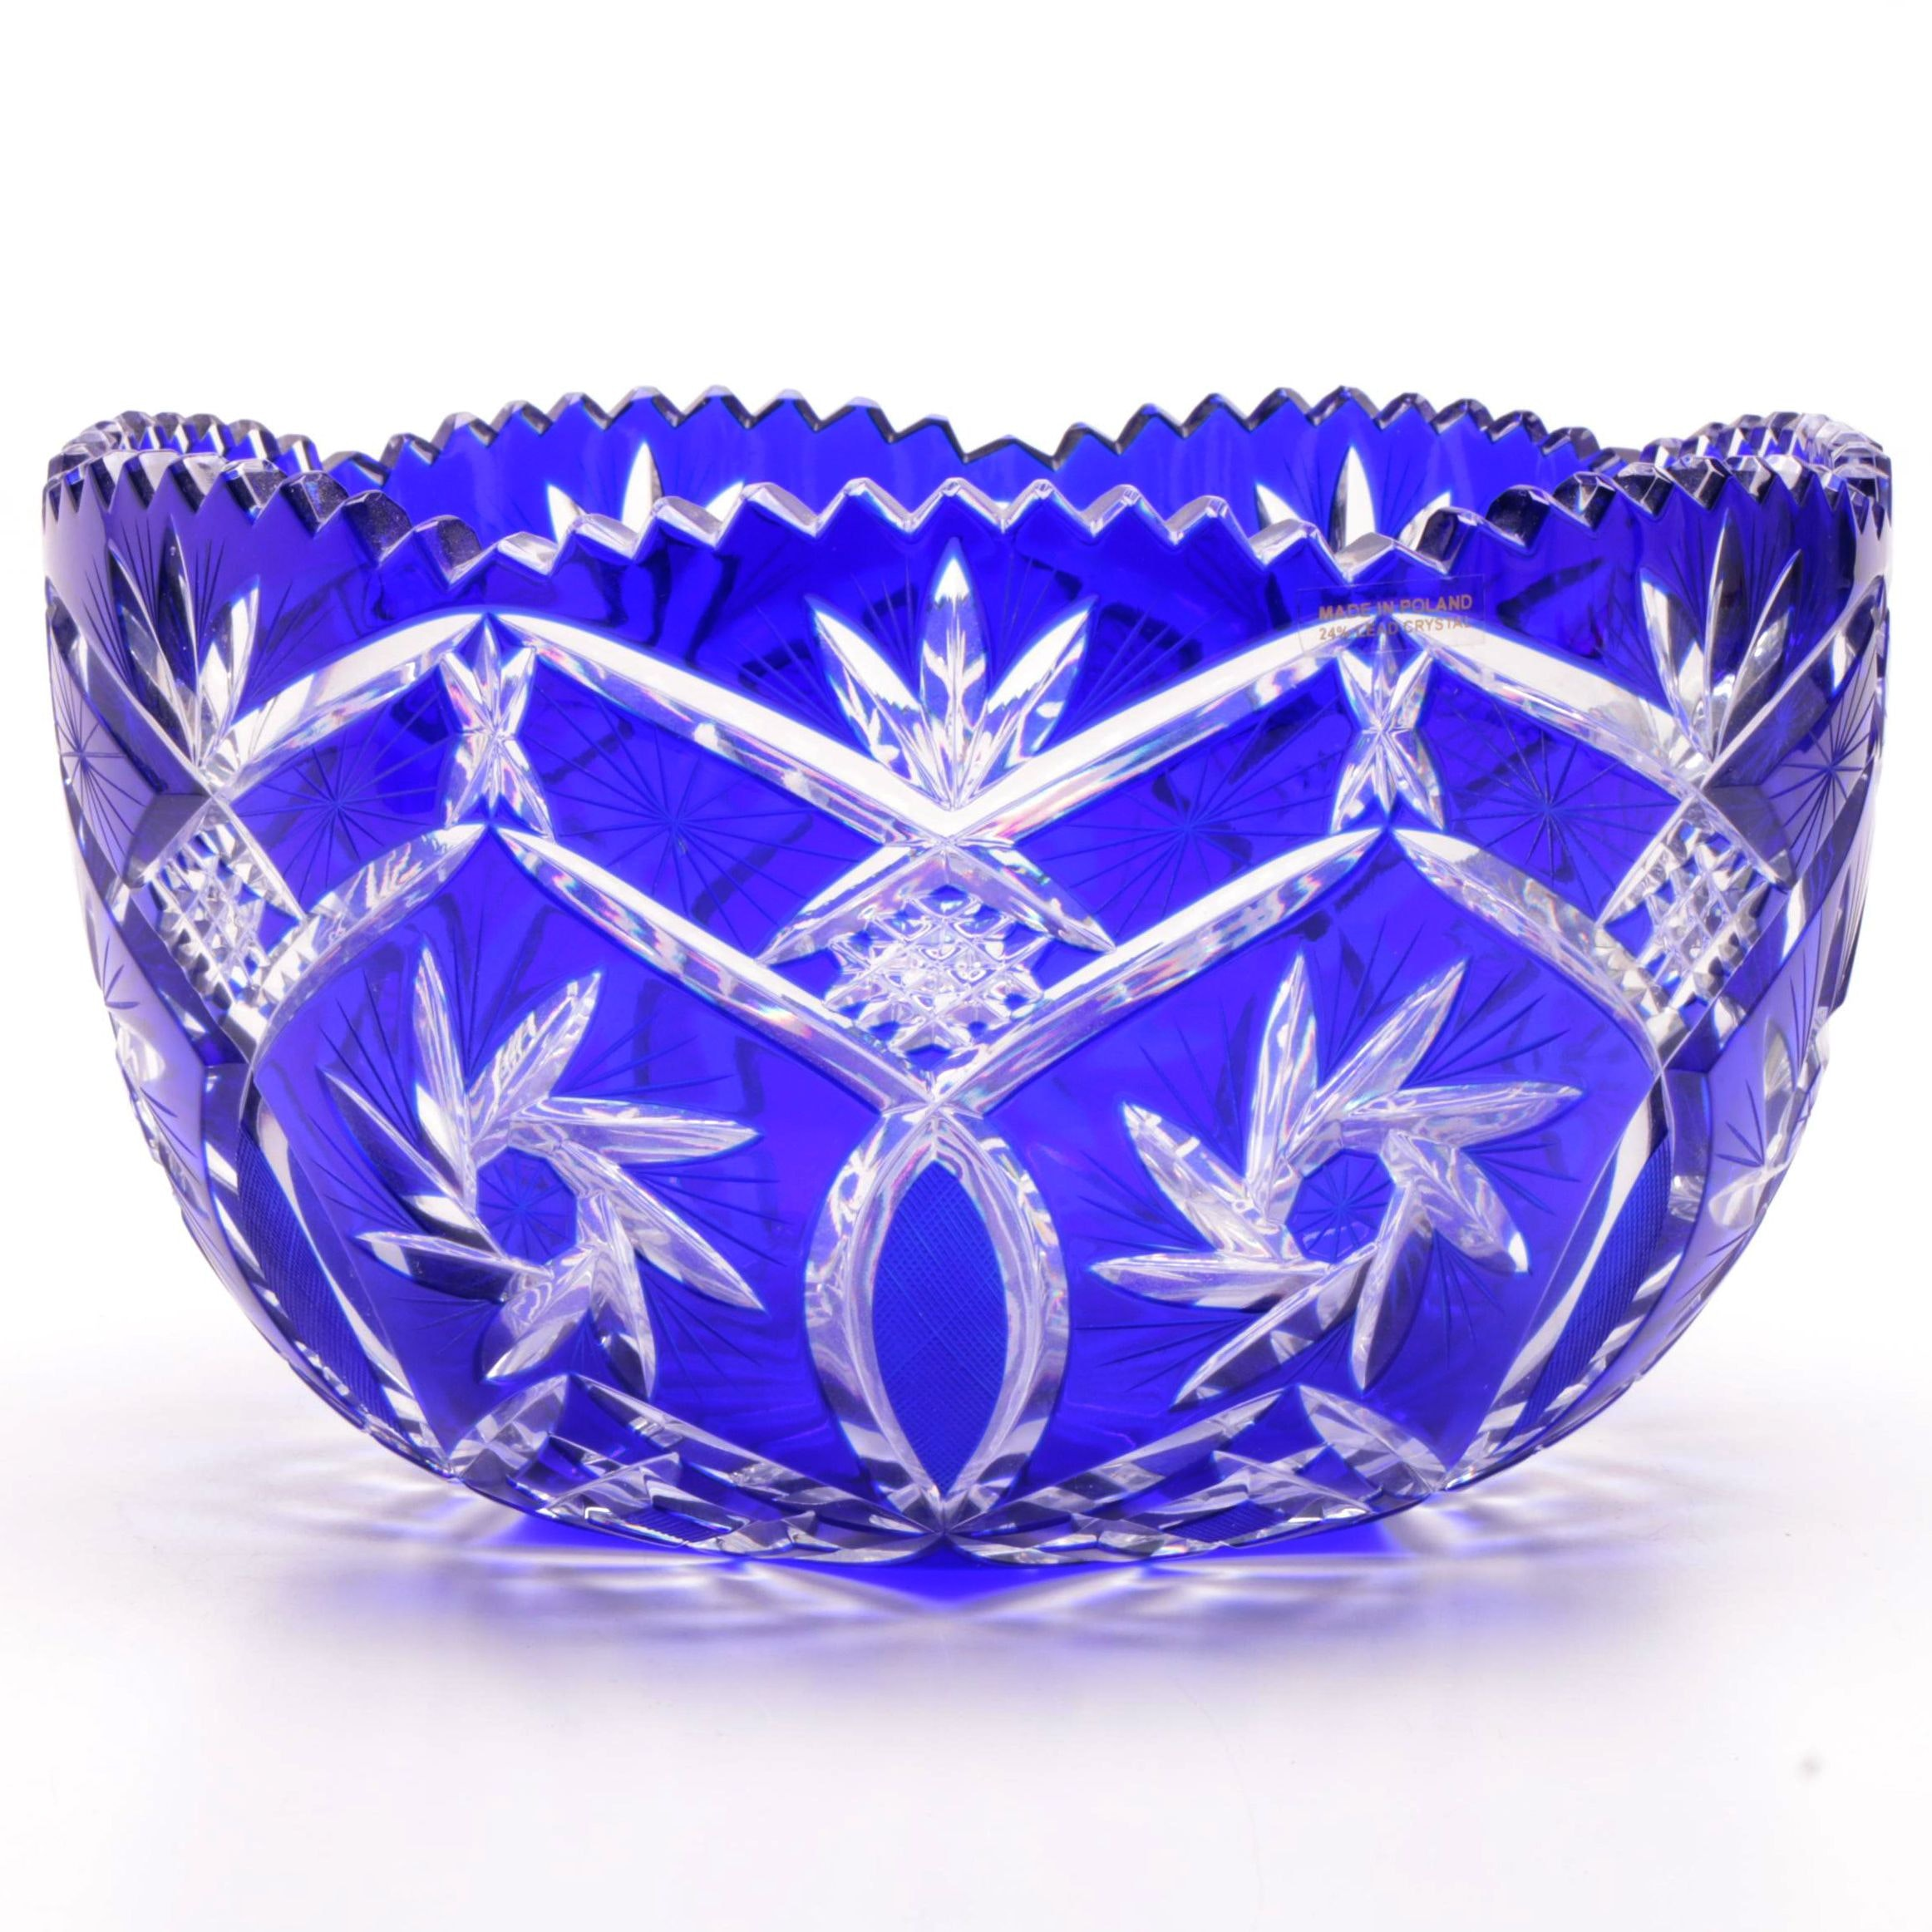 Cobalt Blue Cased Cut to Clear Crystal Center Bowl